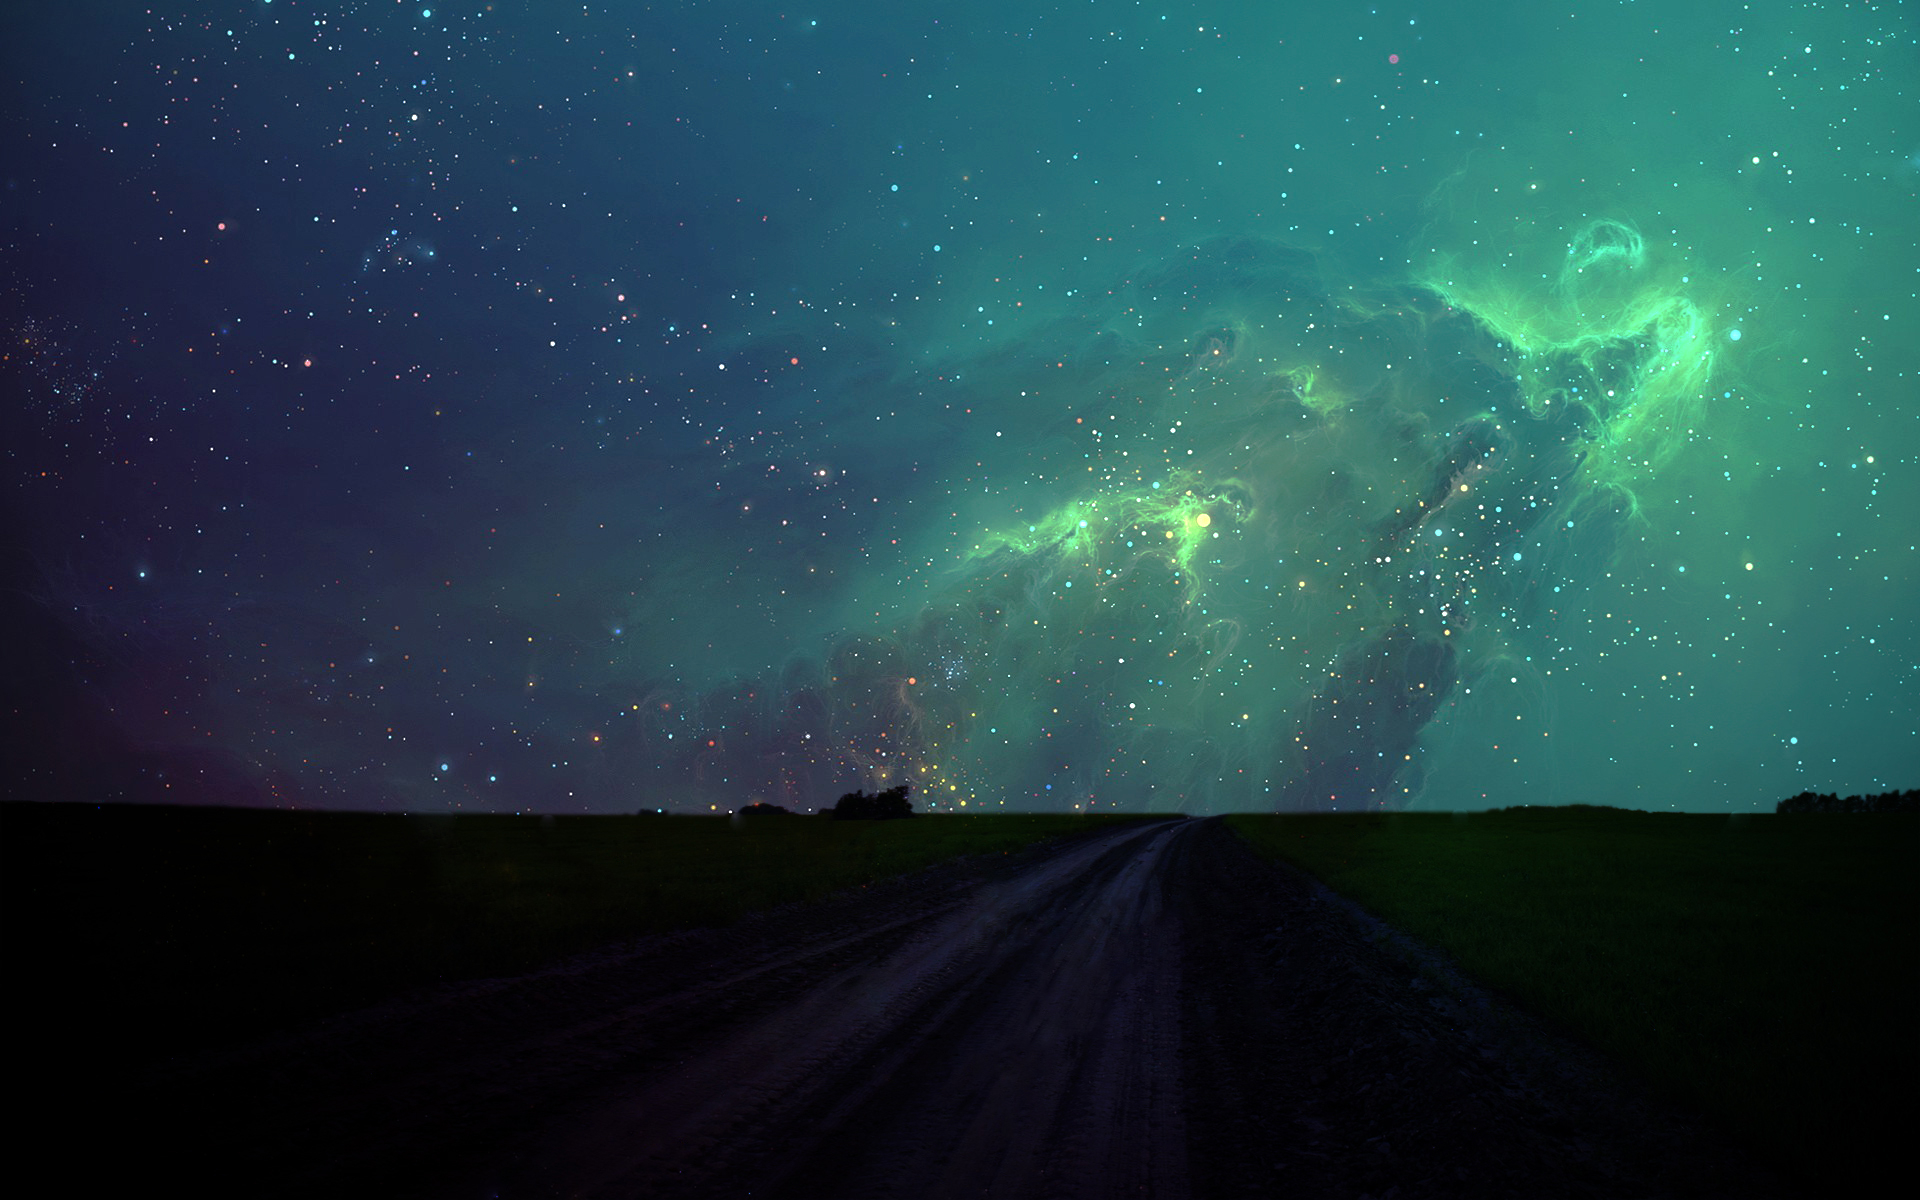 Cute 3d Cartoon Wallpapers Night Stars And Green Sky